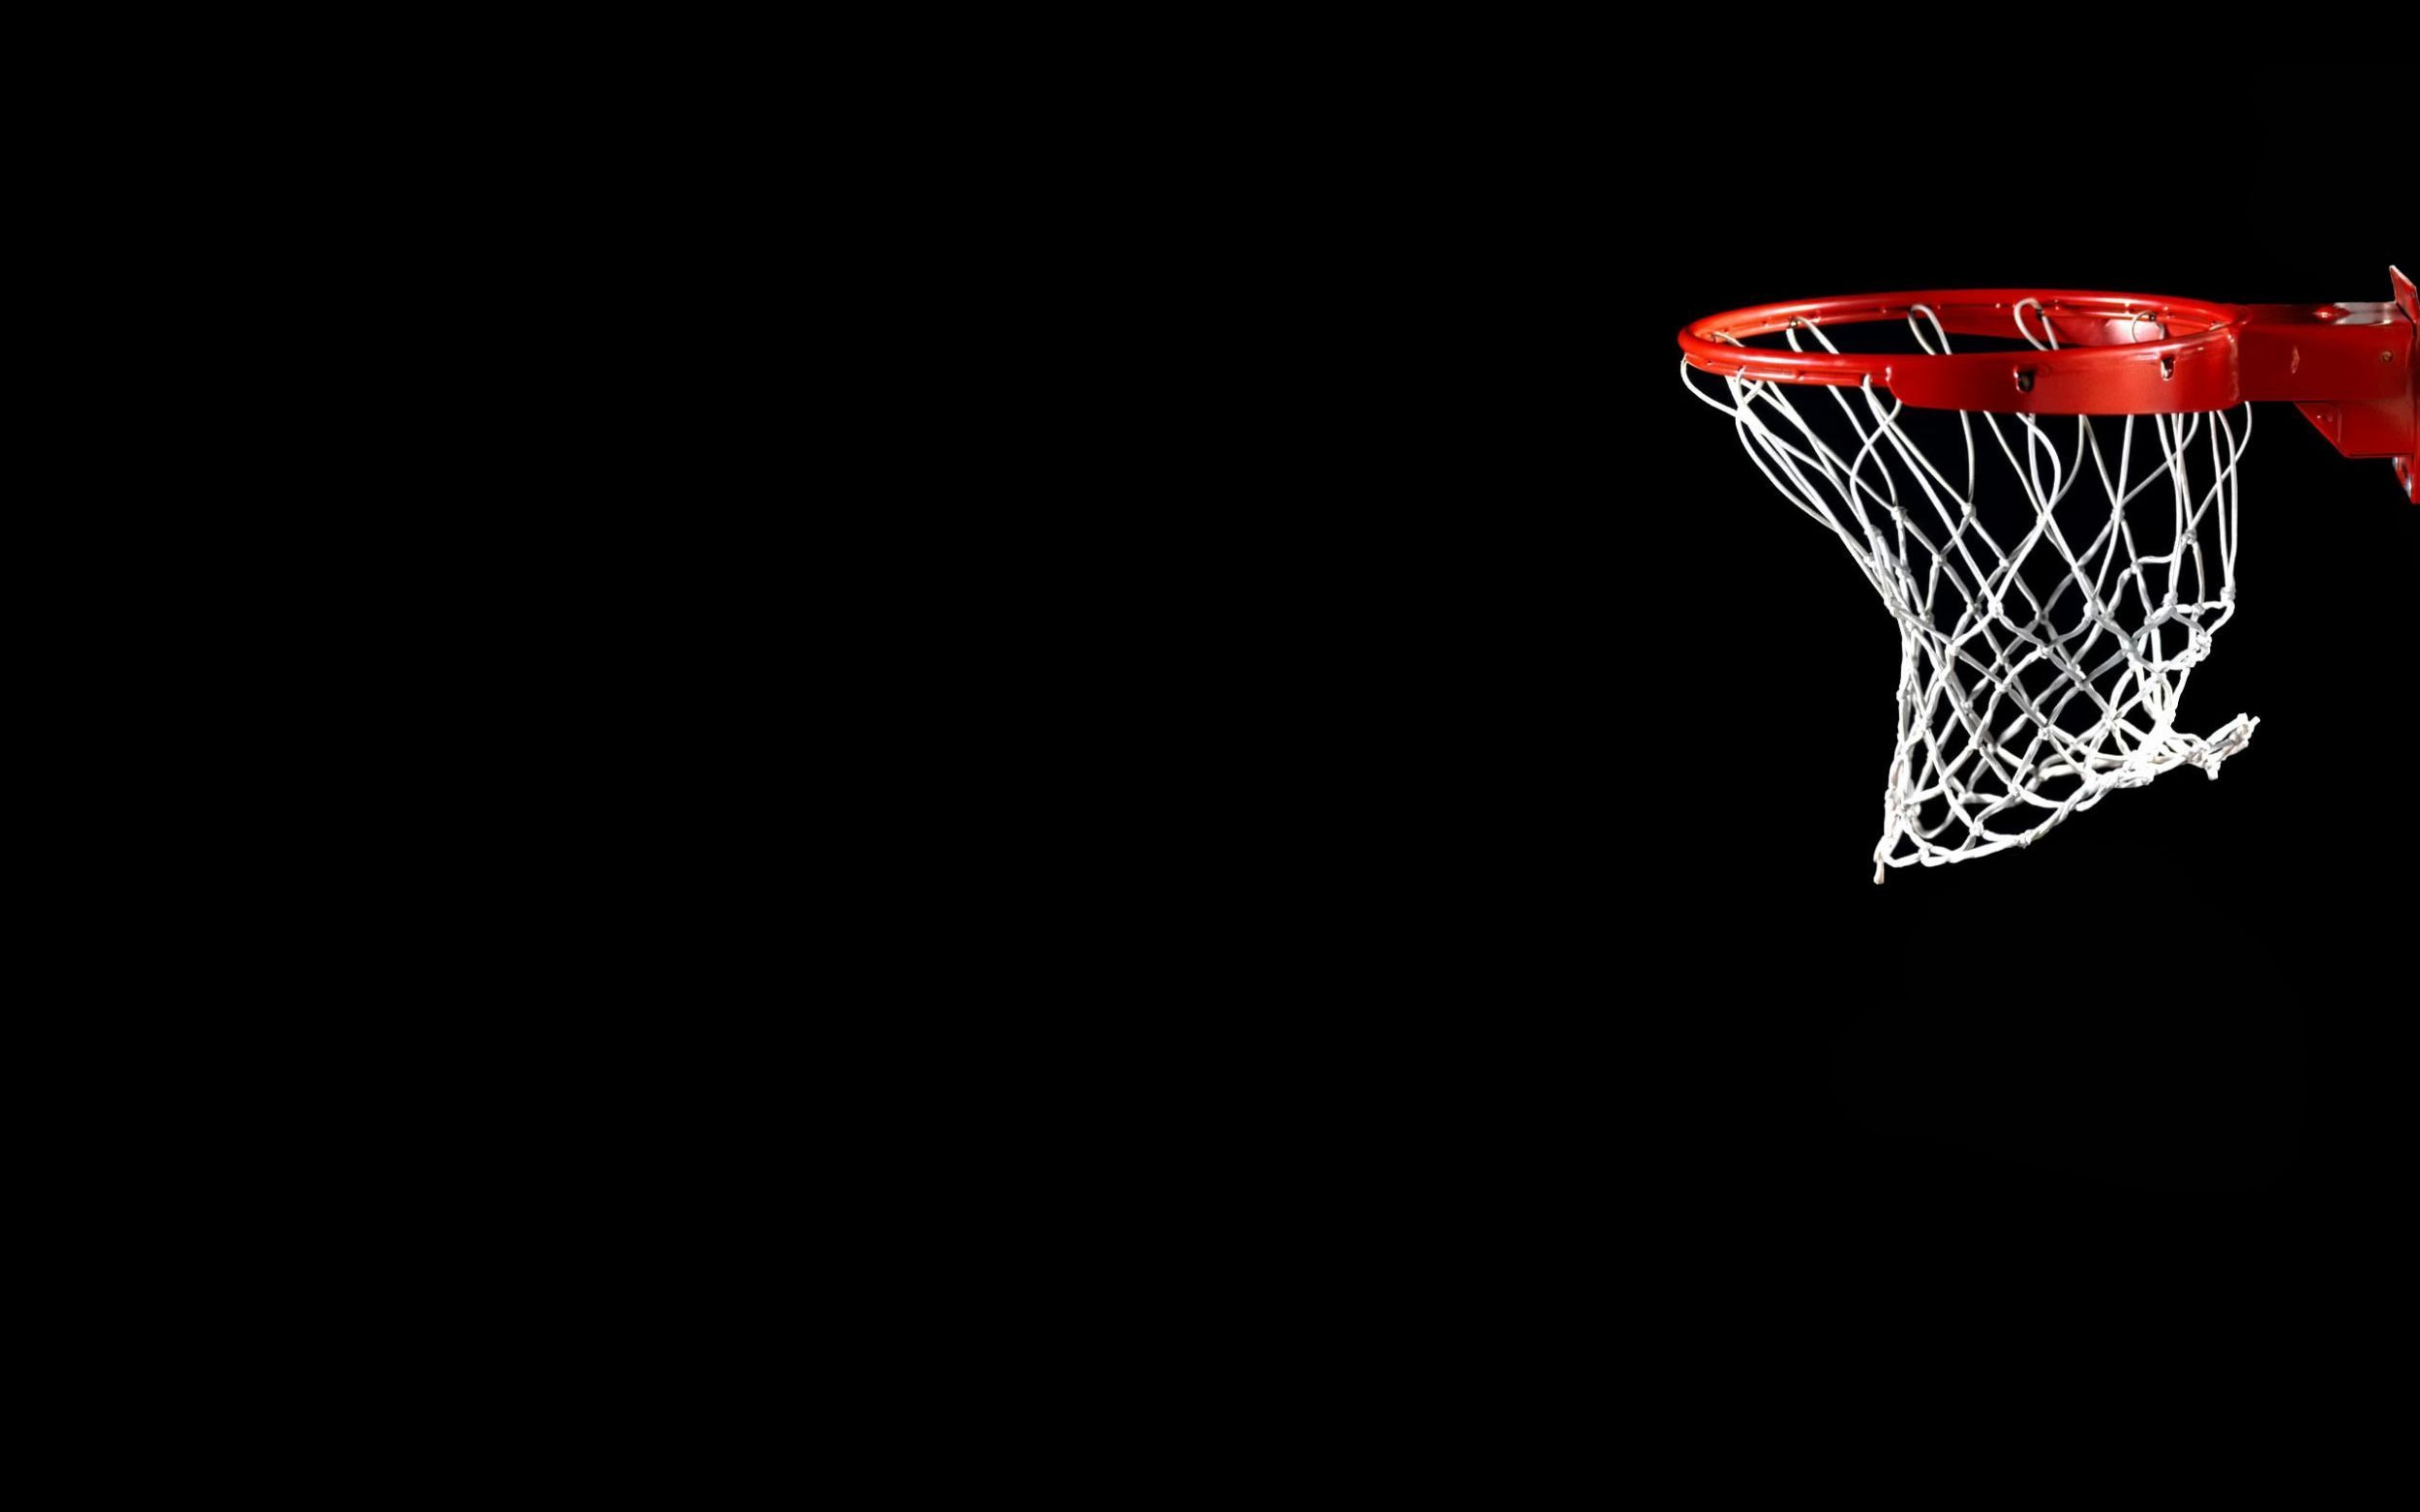 Basketball Laptop Wallpapers Top Free Basketball Laptop